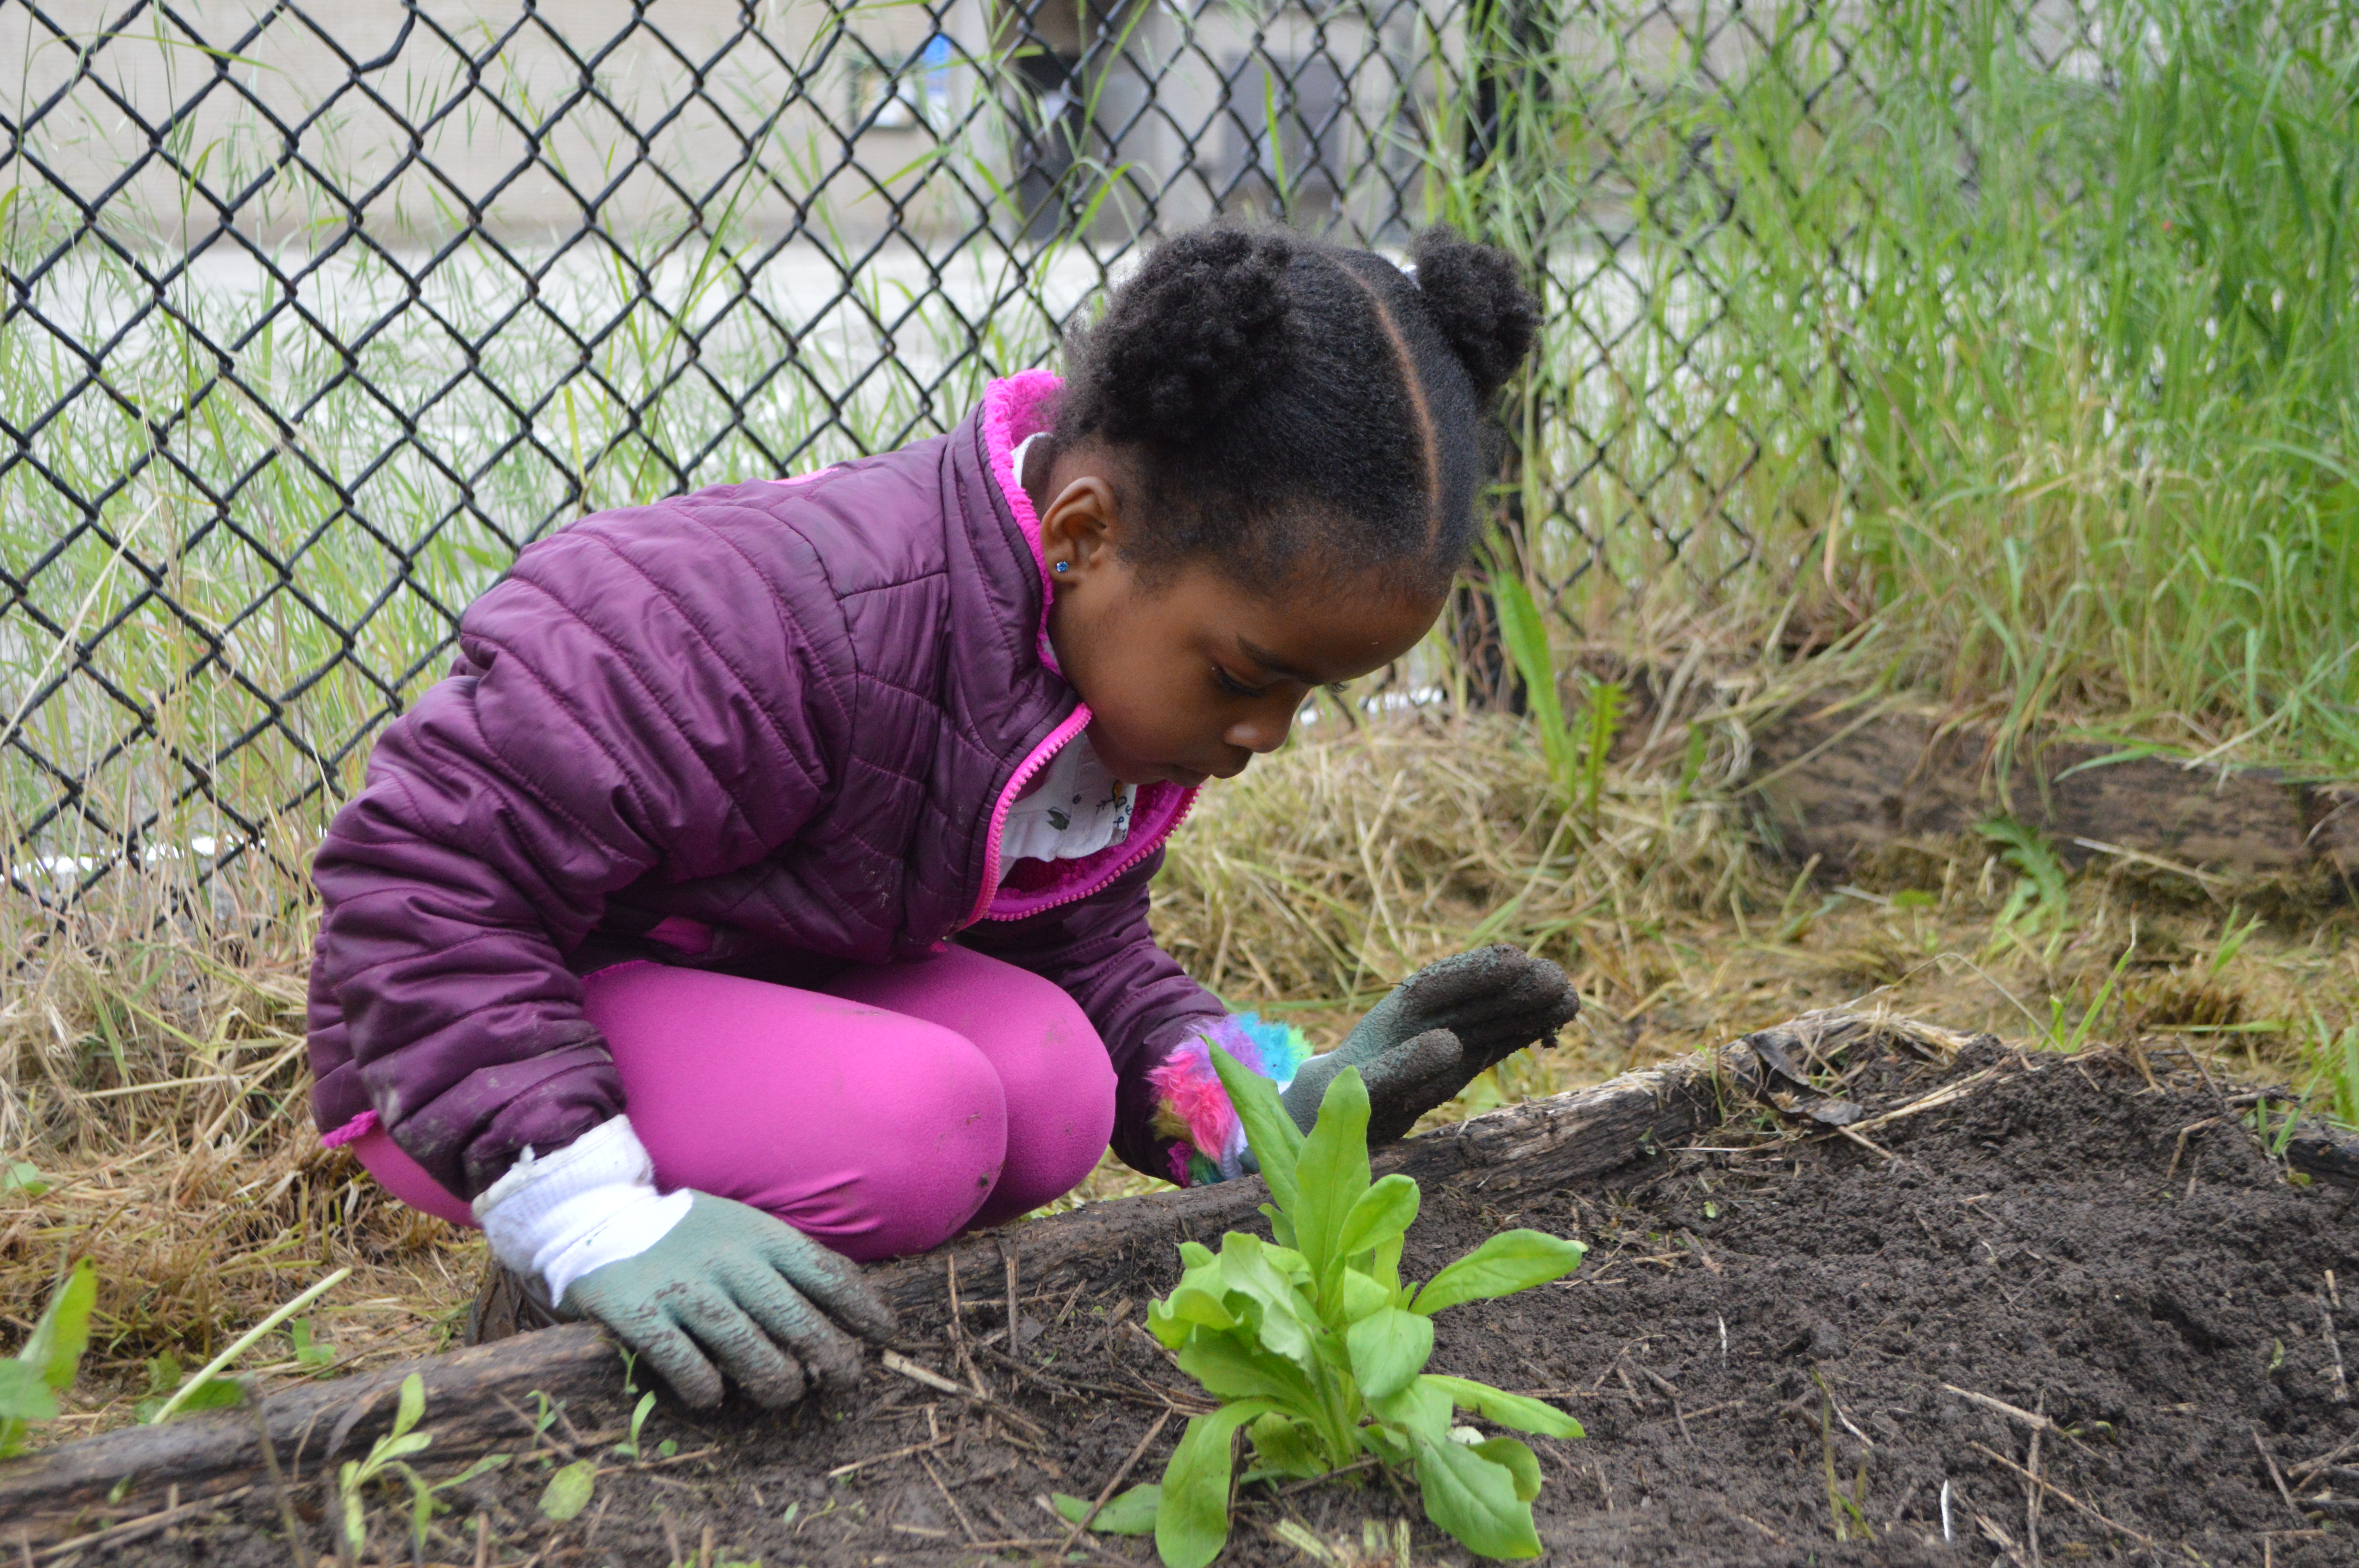 Webinar: Best Practices for Working with Kids in the Garden